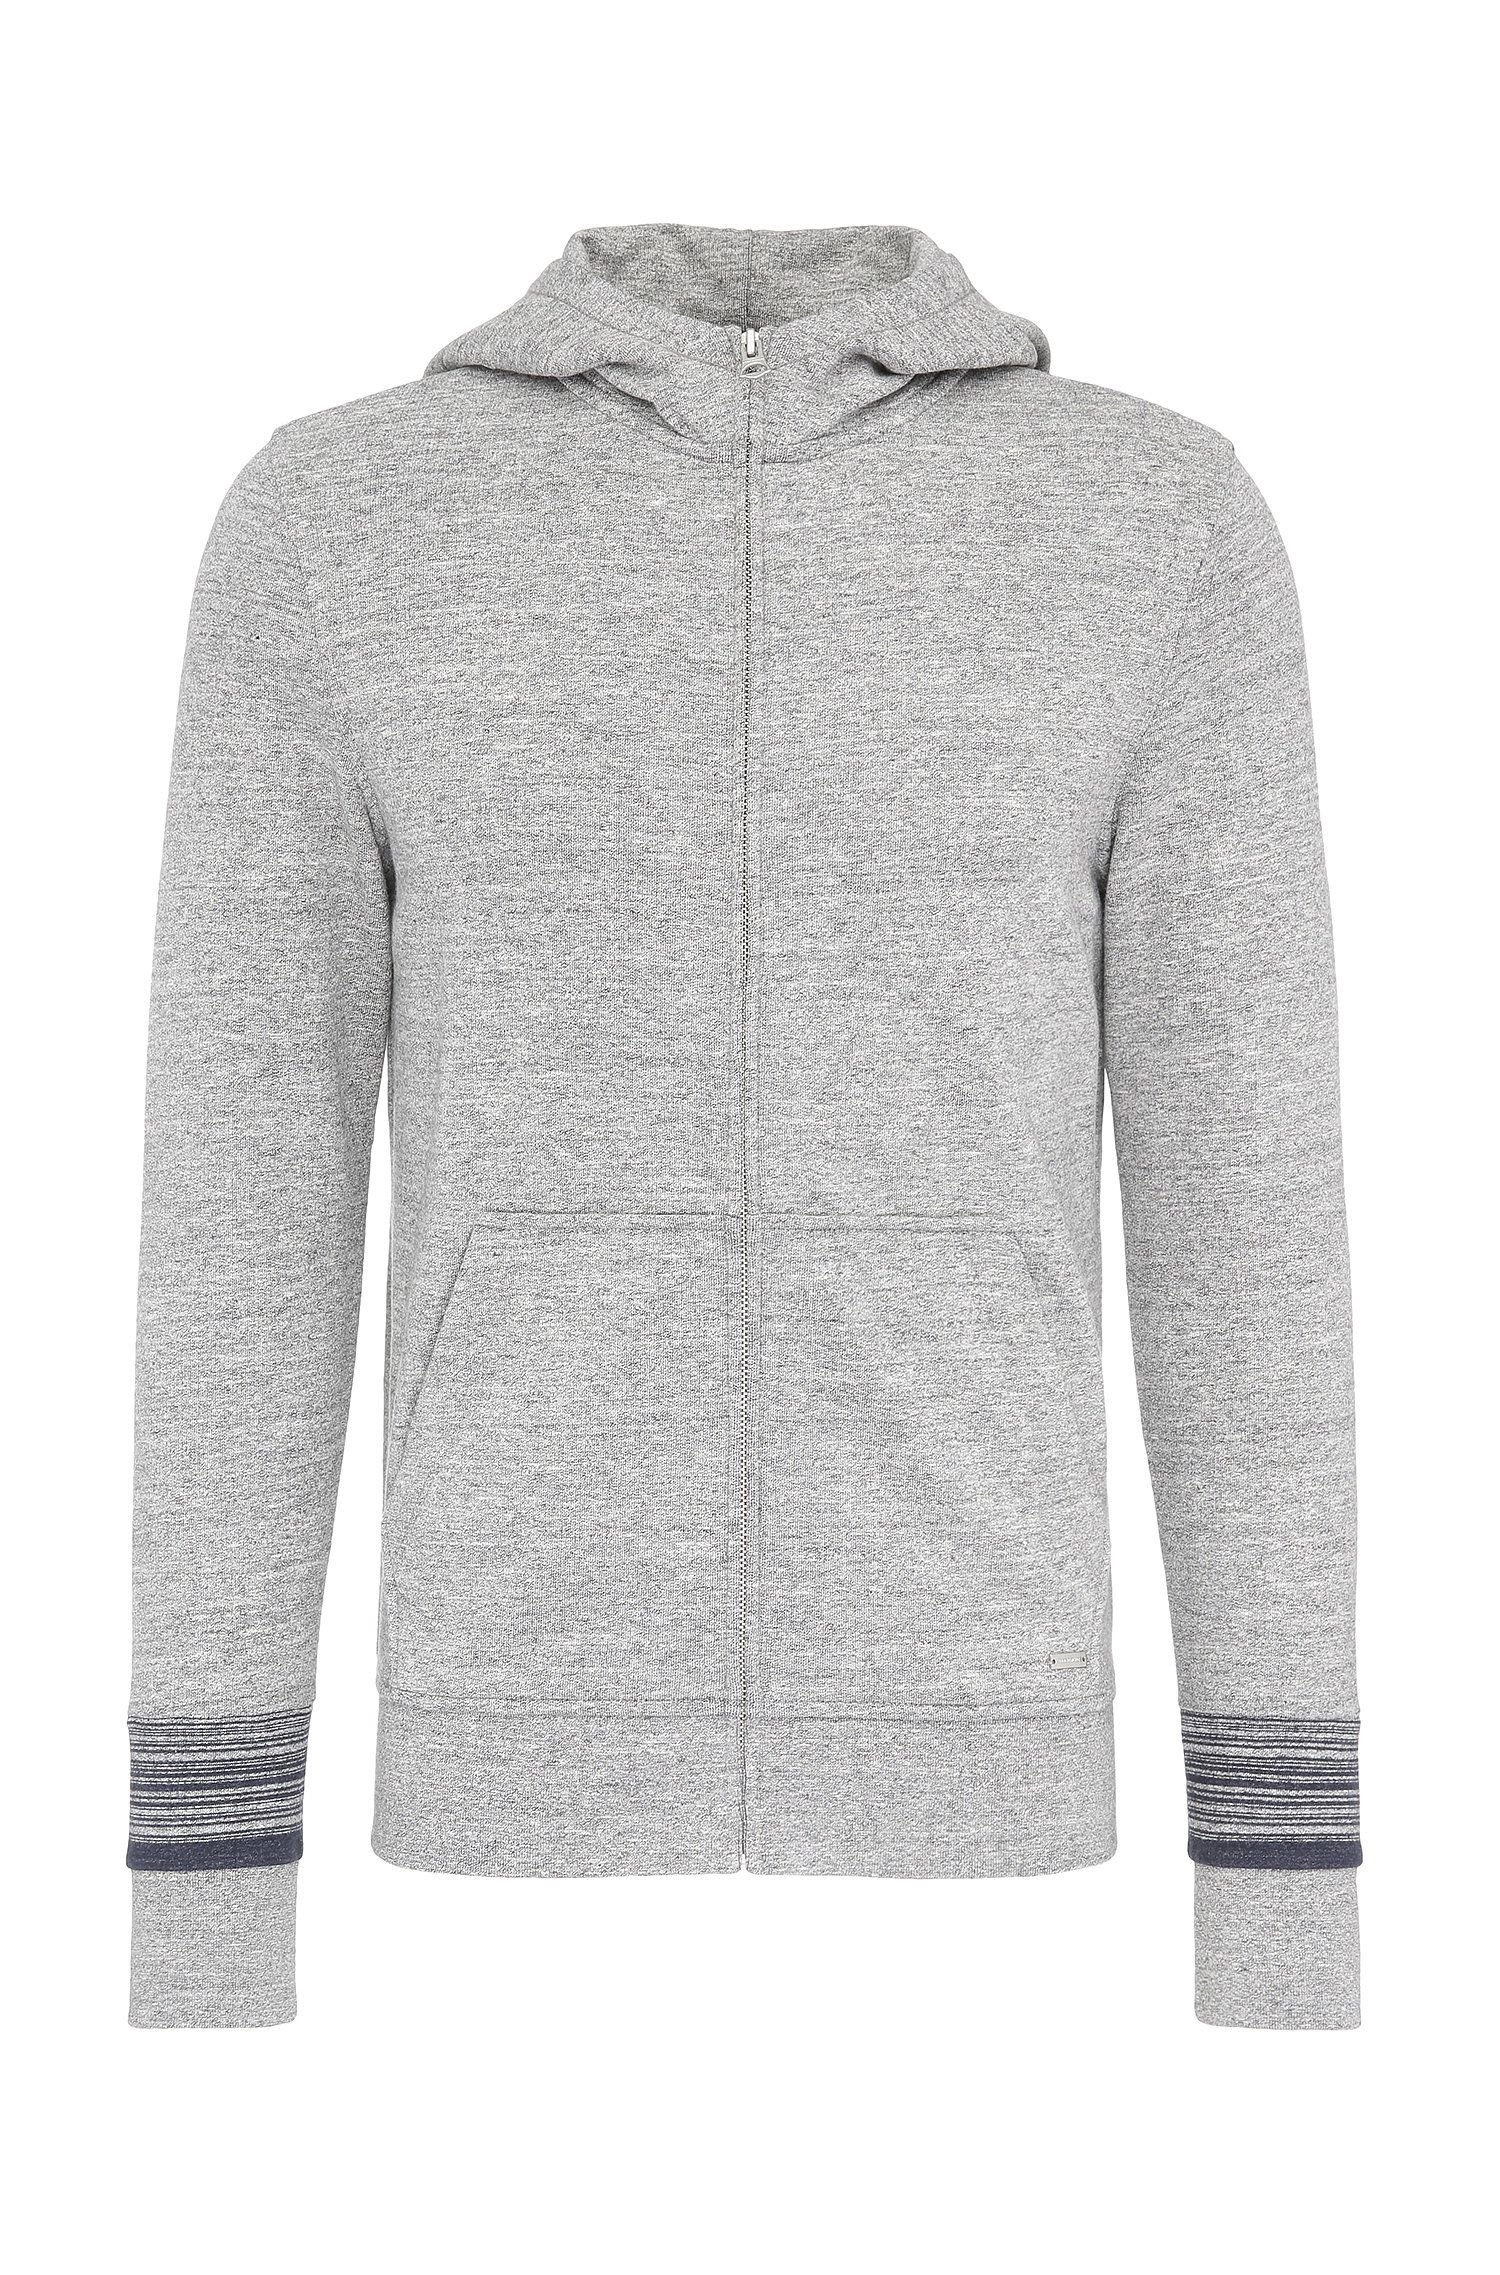 'Zappa' | Cotton French Terry Zip Hooded Jacket